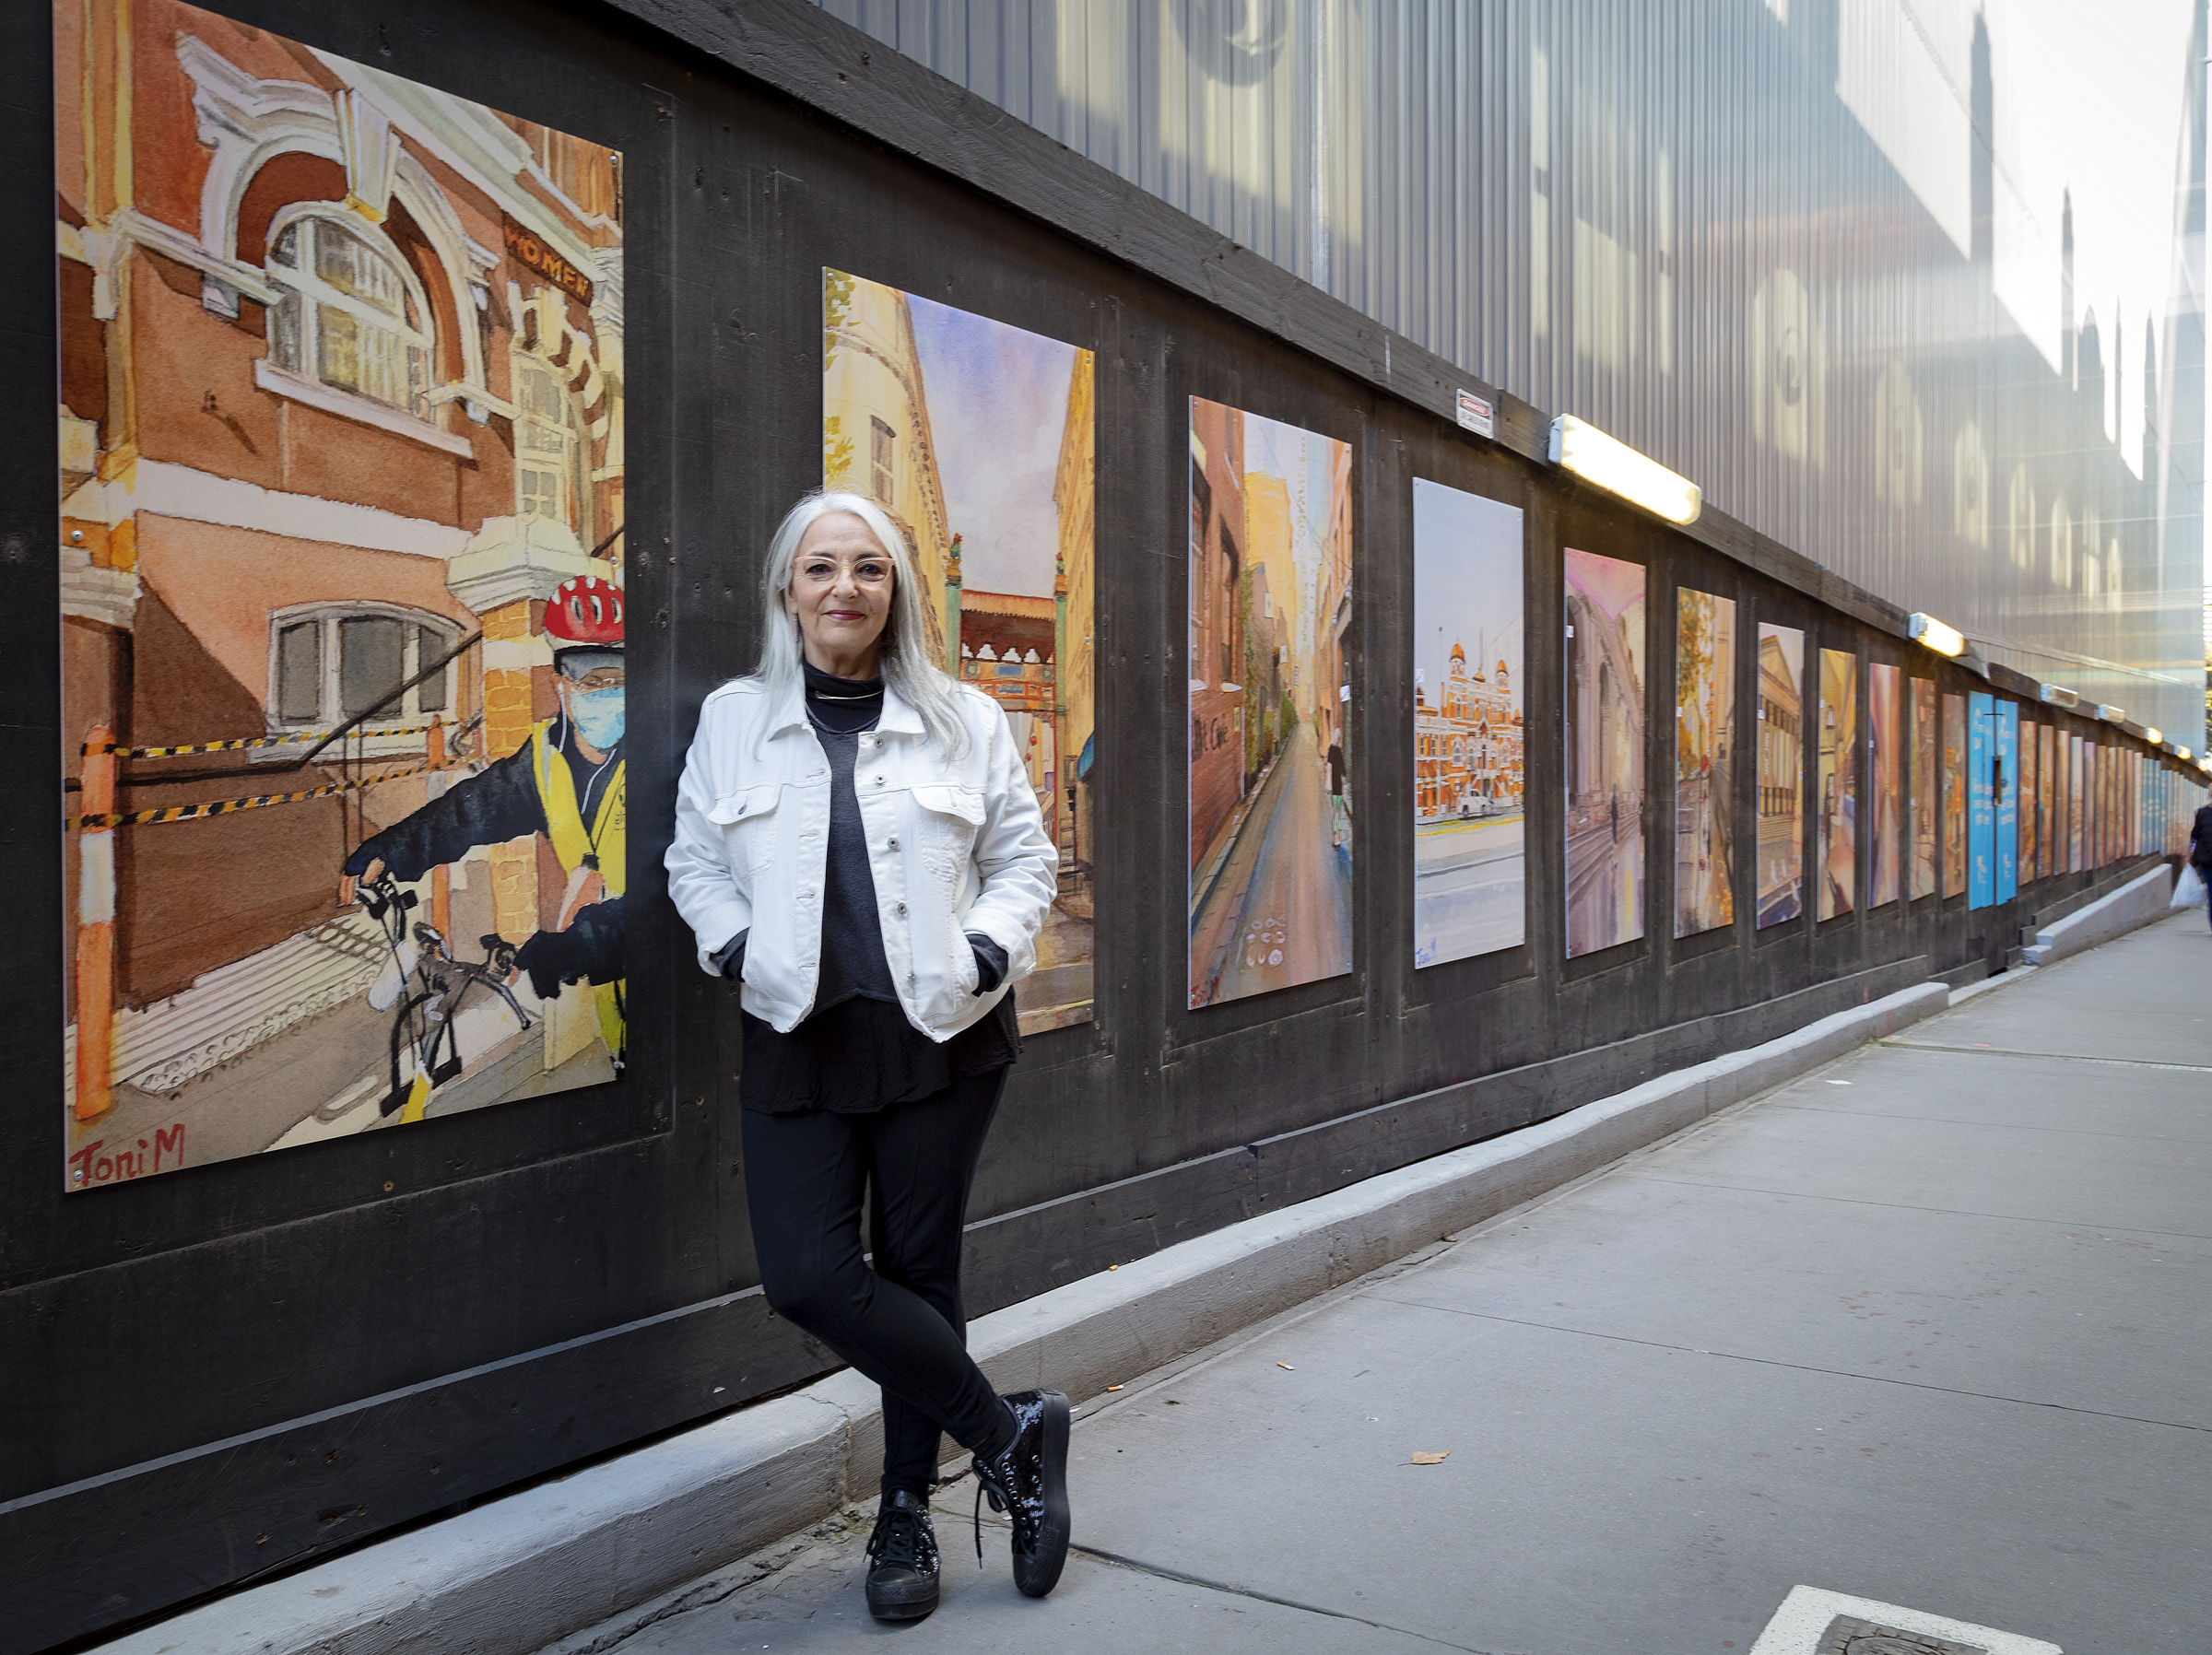 Artist Toni Major with her artwork at the State Library Station construction site.